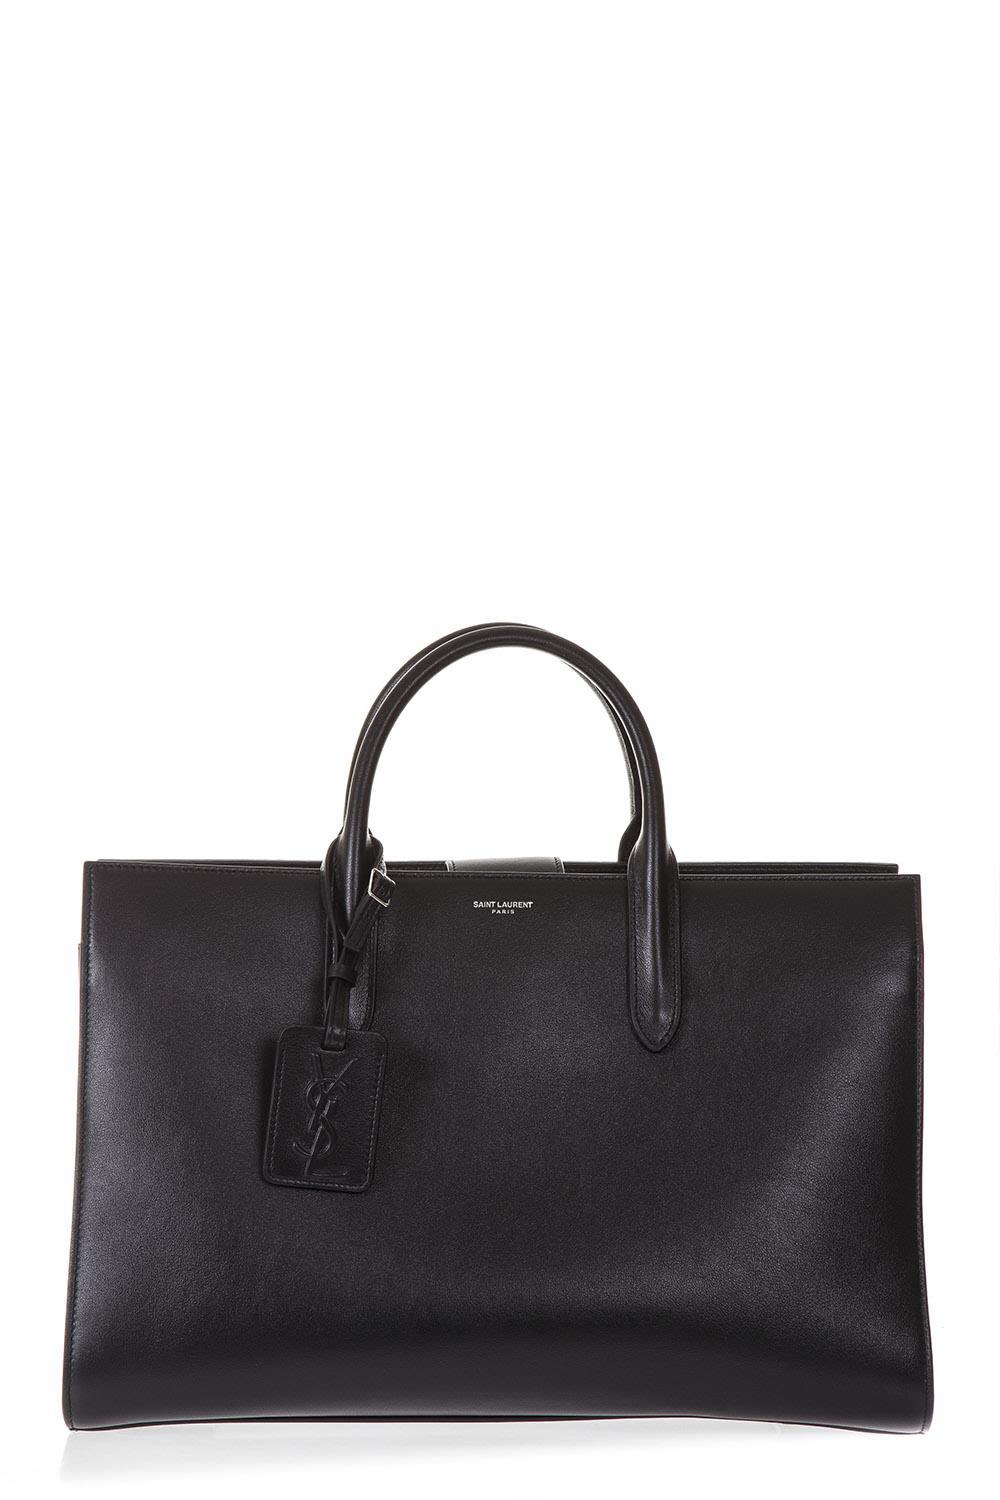 48db7e634890 Saint Laurent Tote Bag Size | Stanford Center for Opportunity Policy ...